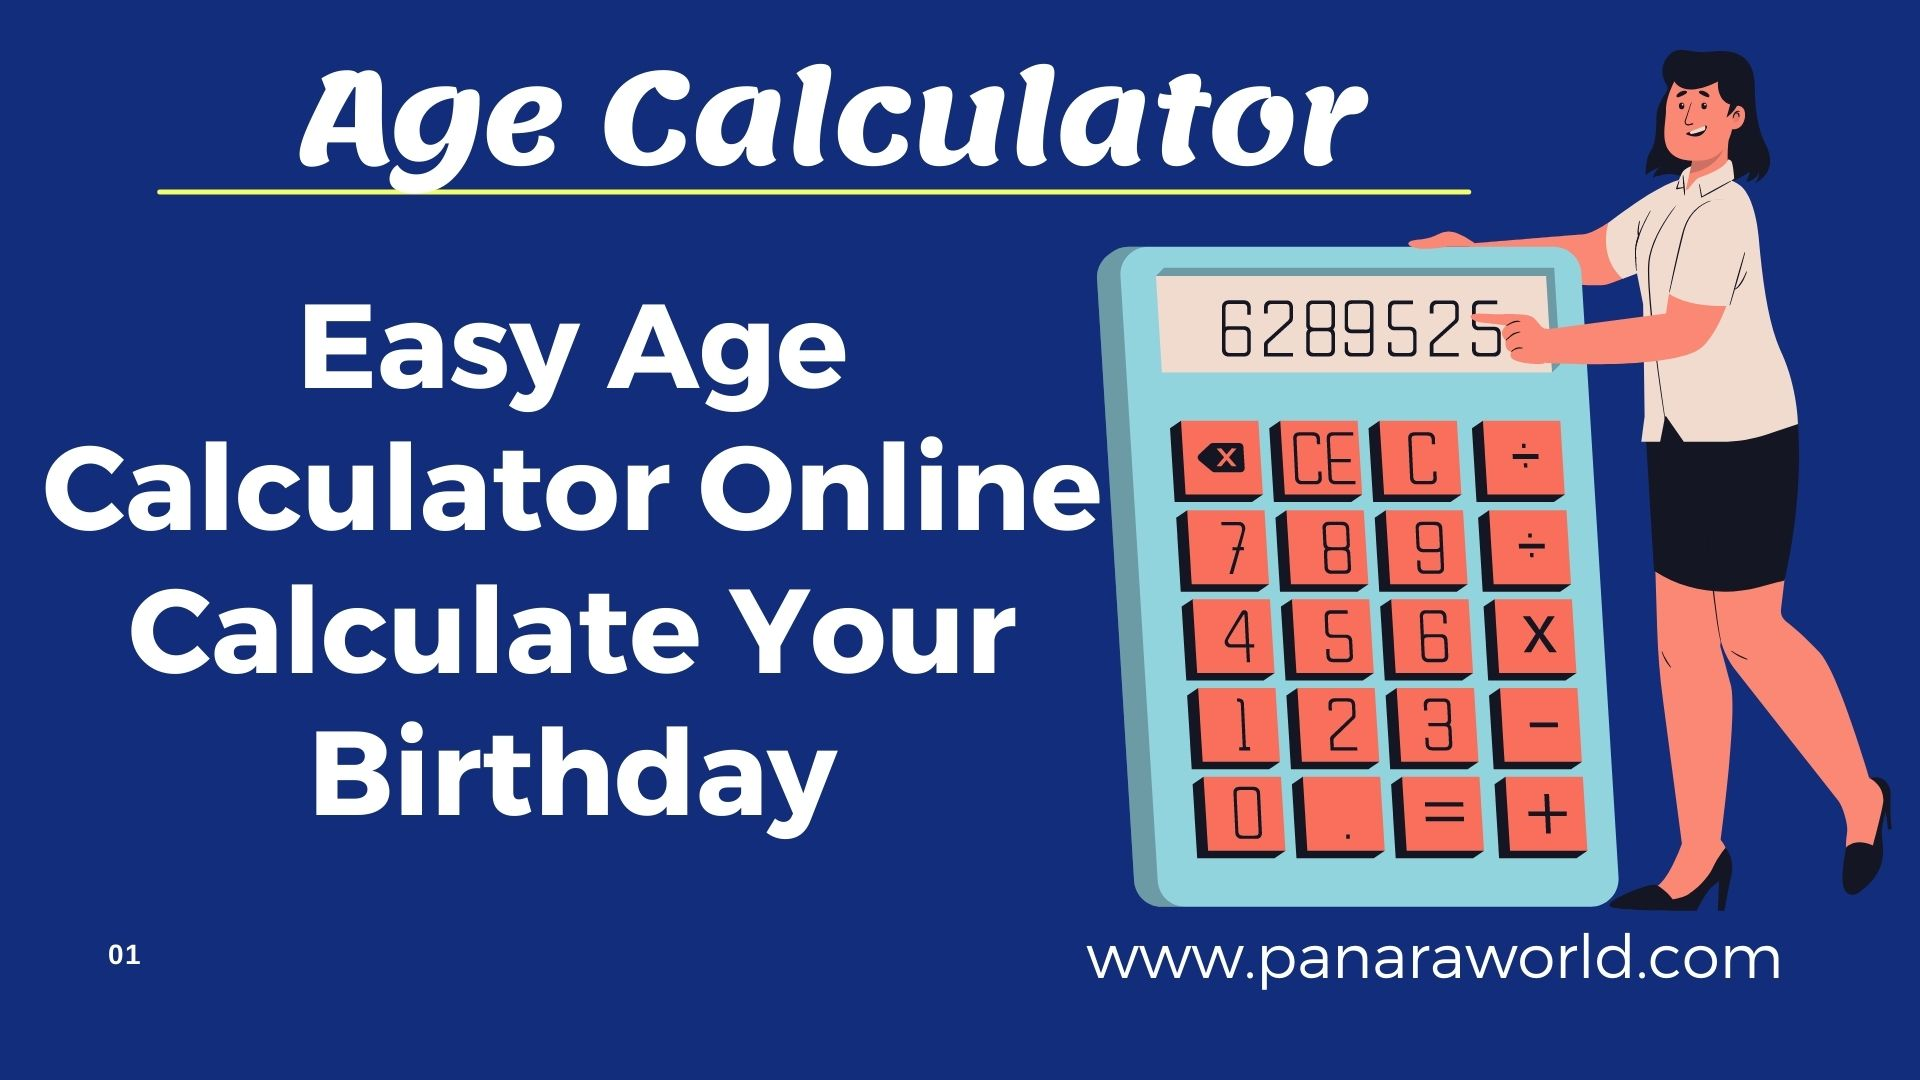 Easy Age Calculator Online